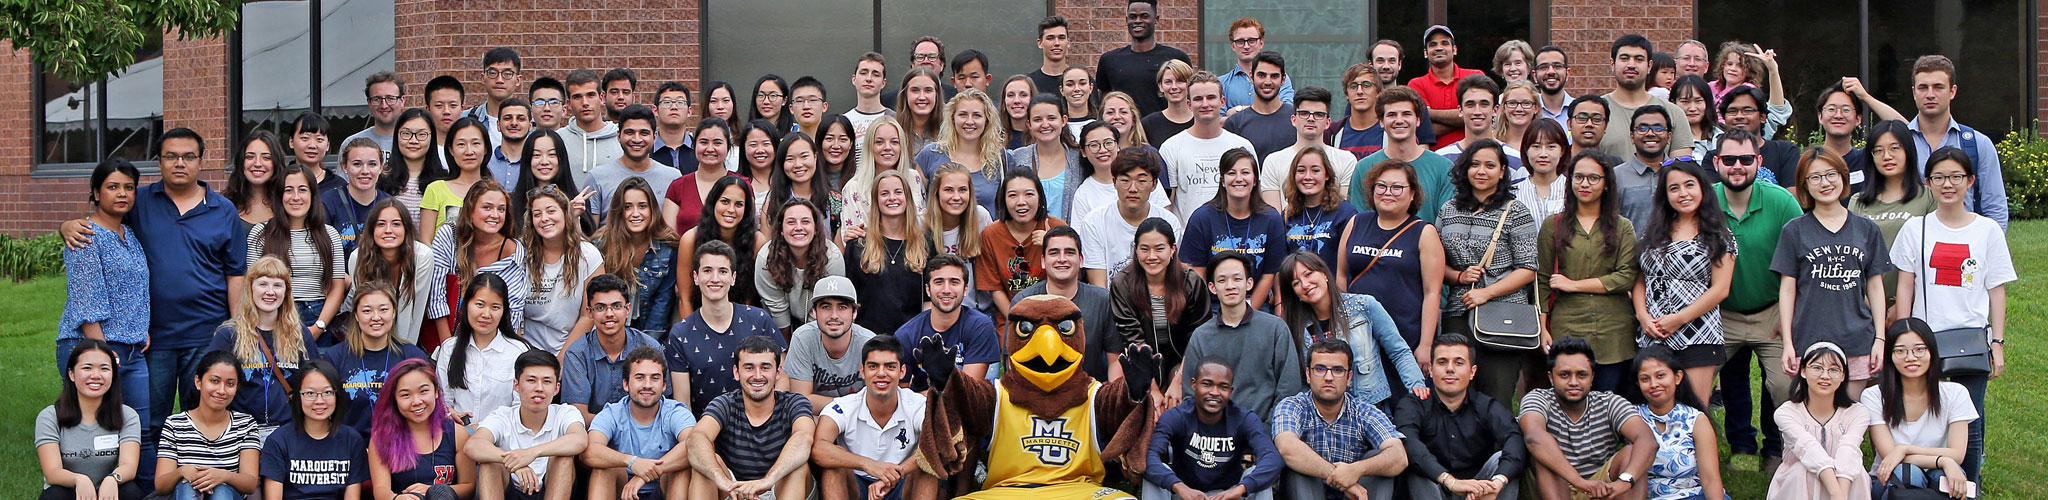 International students at Marquette